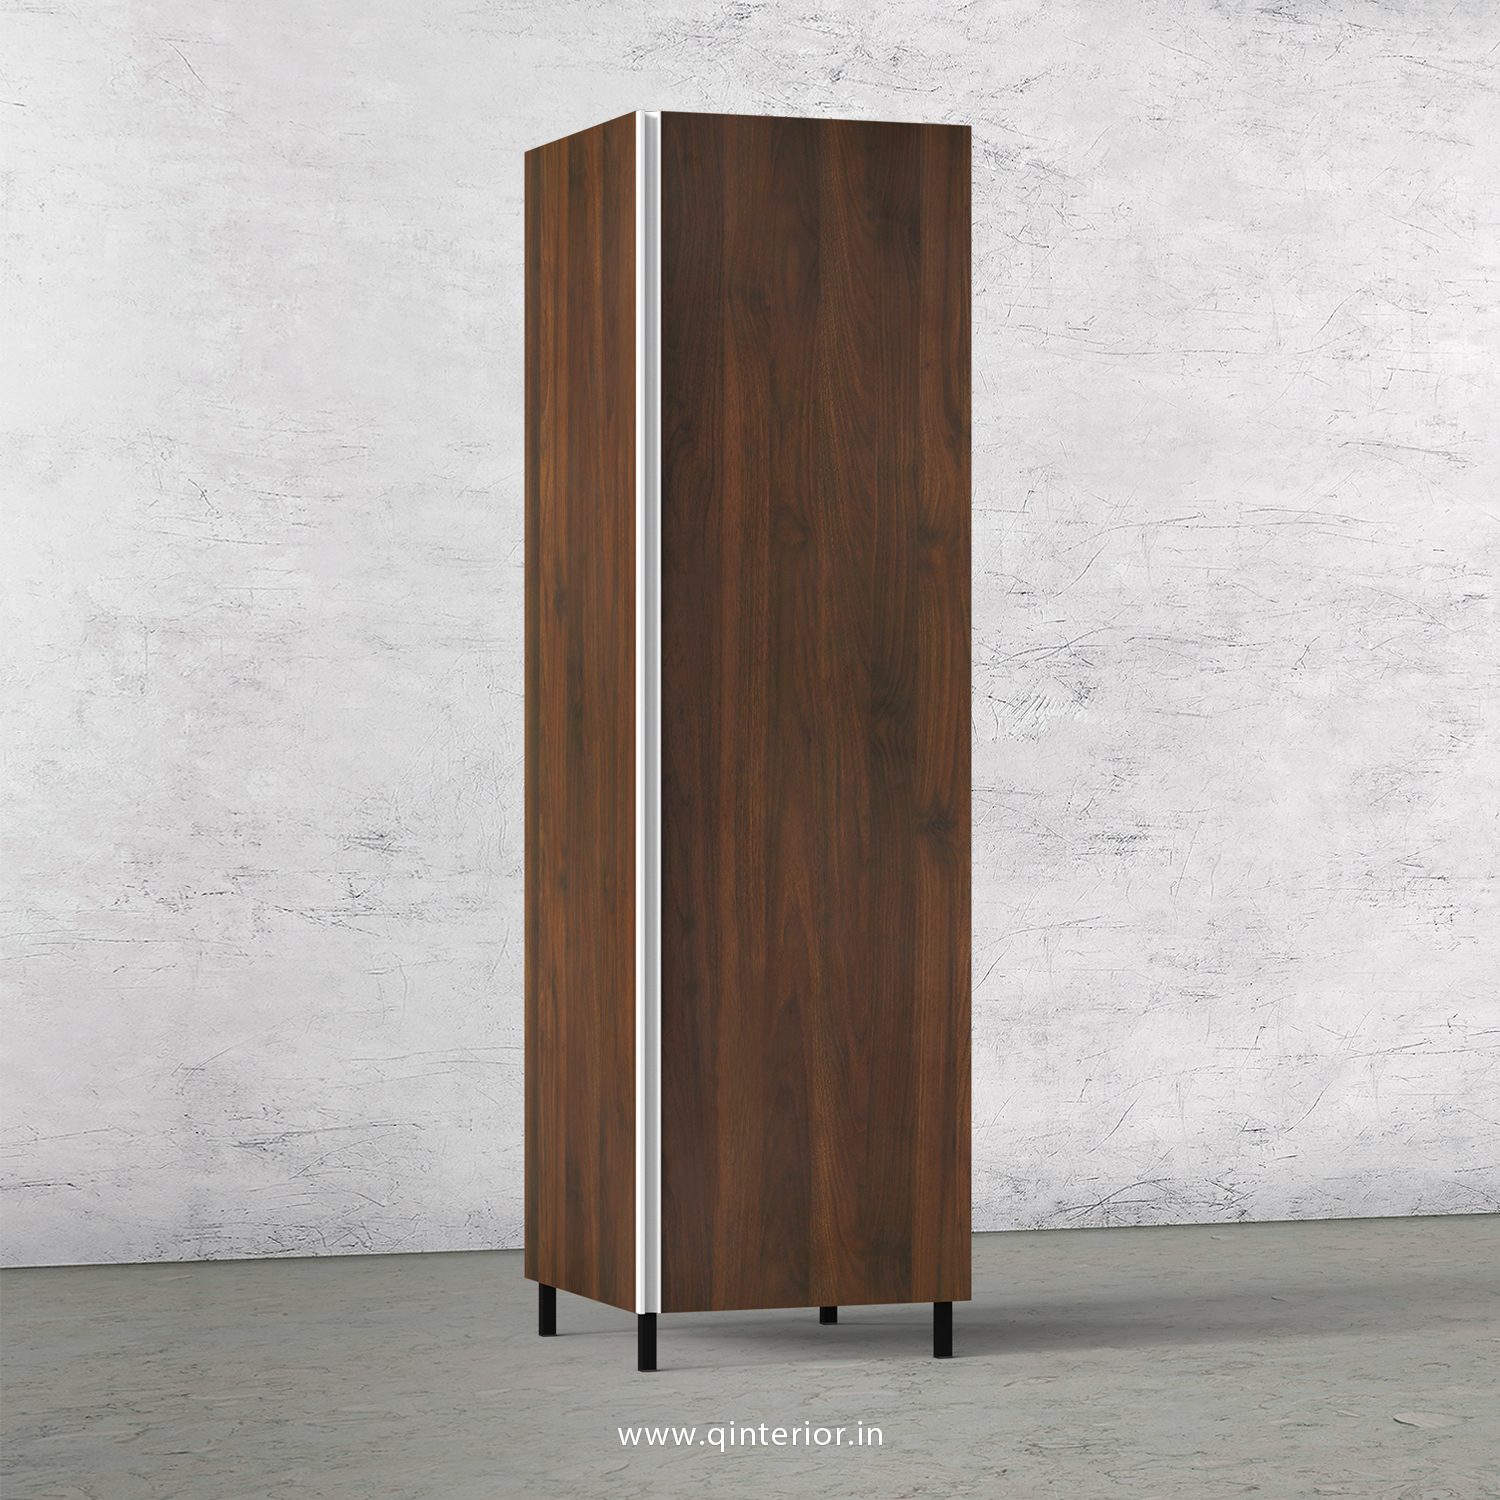 Stable Kitchen Tall Unit in Walnut Finish - KTB801 C1